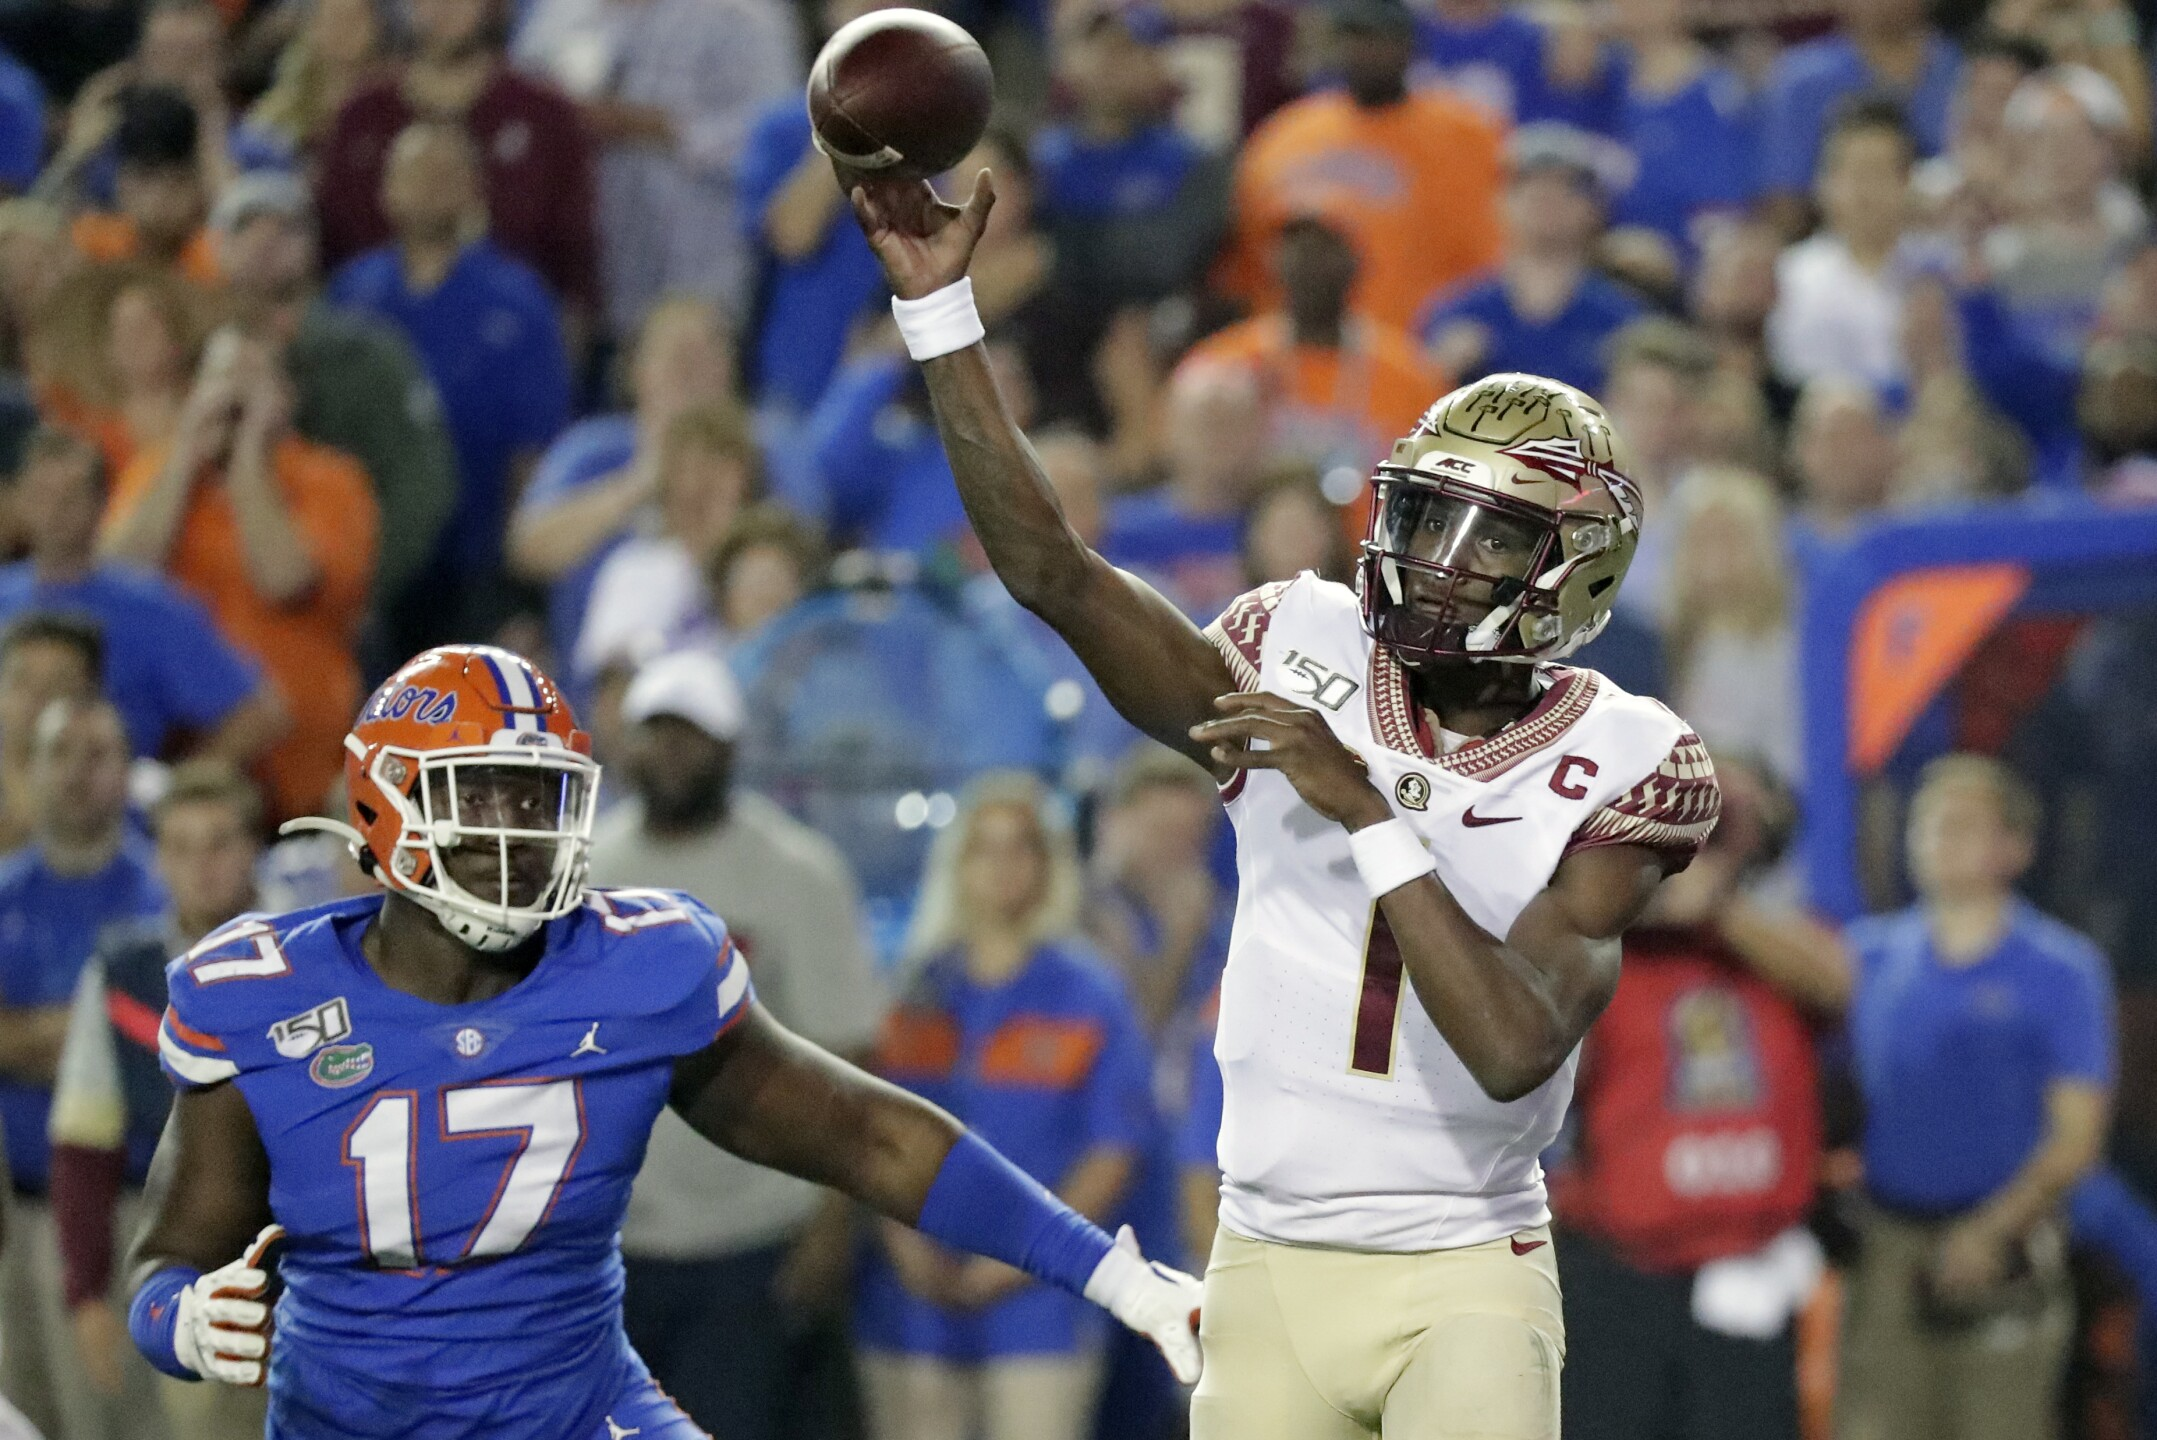 Florida State Seminoles QB James Blackman throws vs Florida Gators in 2019